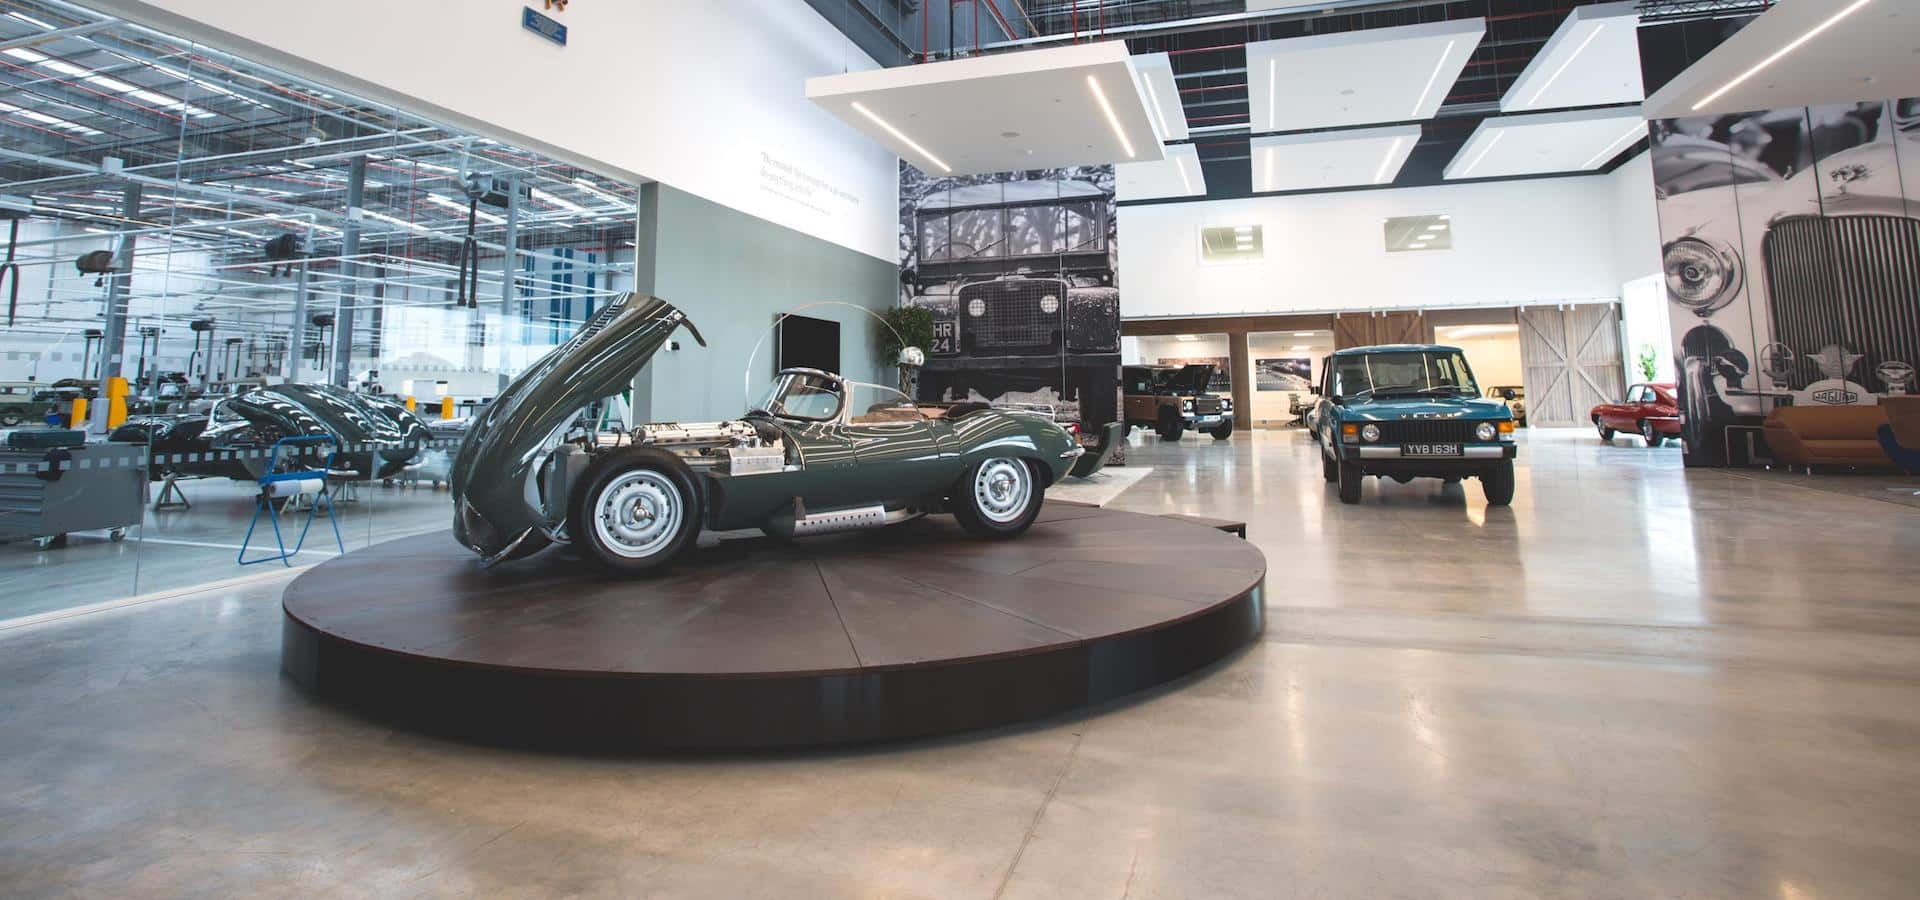 Foyer at Jaguar Land Rover Classic facility in Coventry